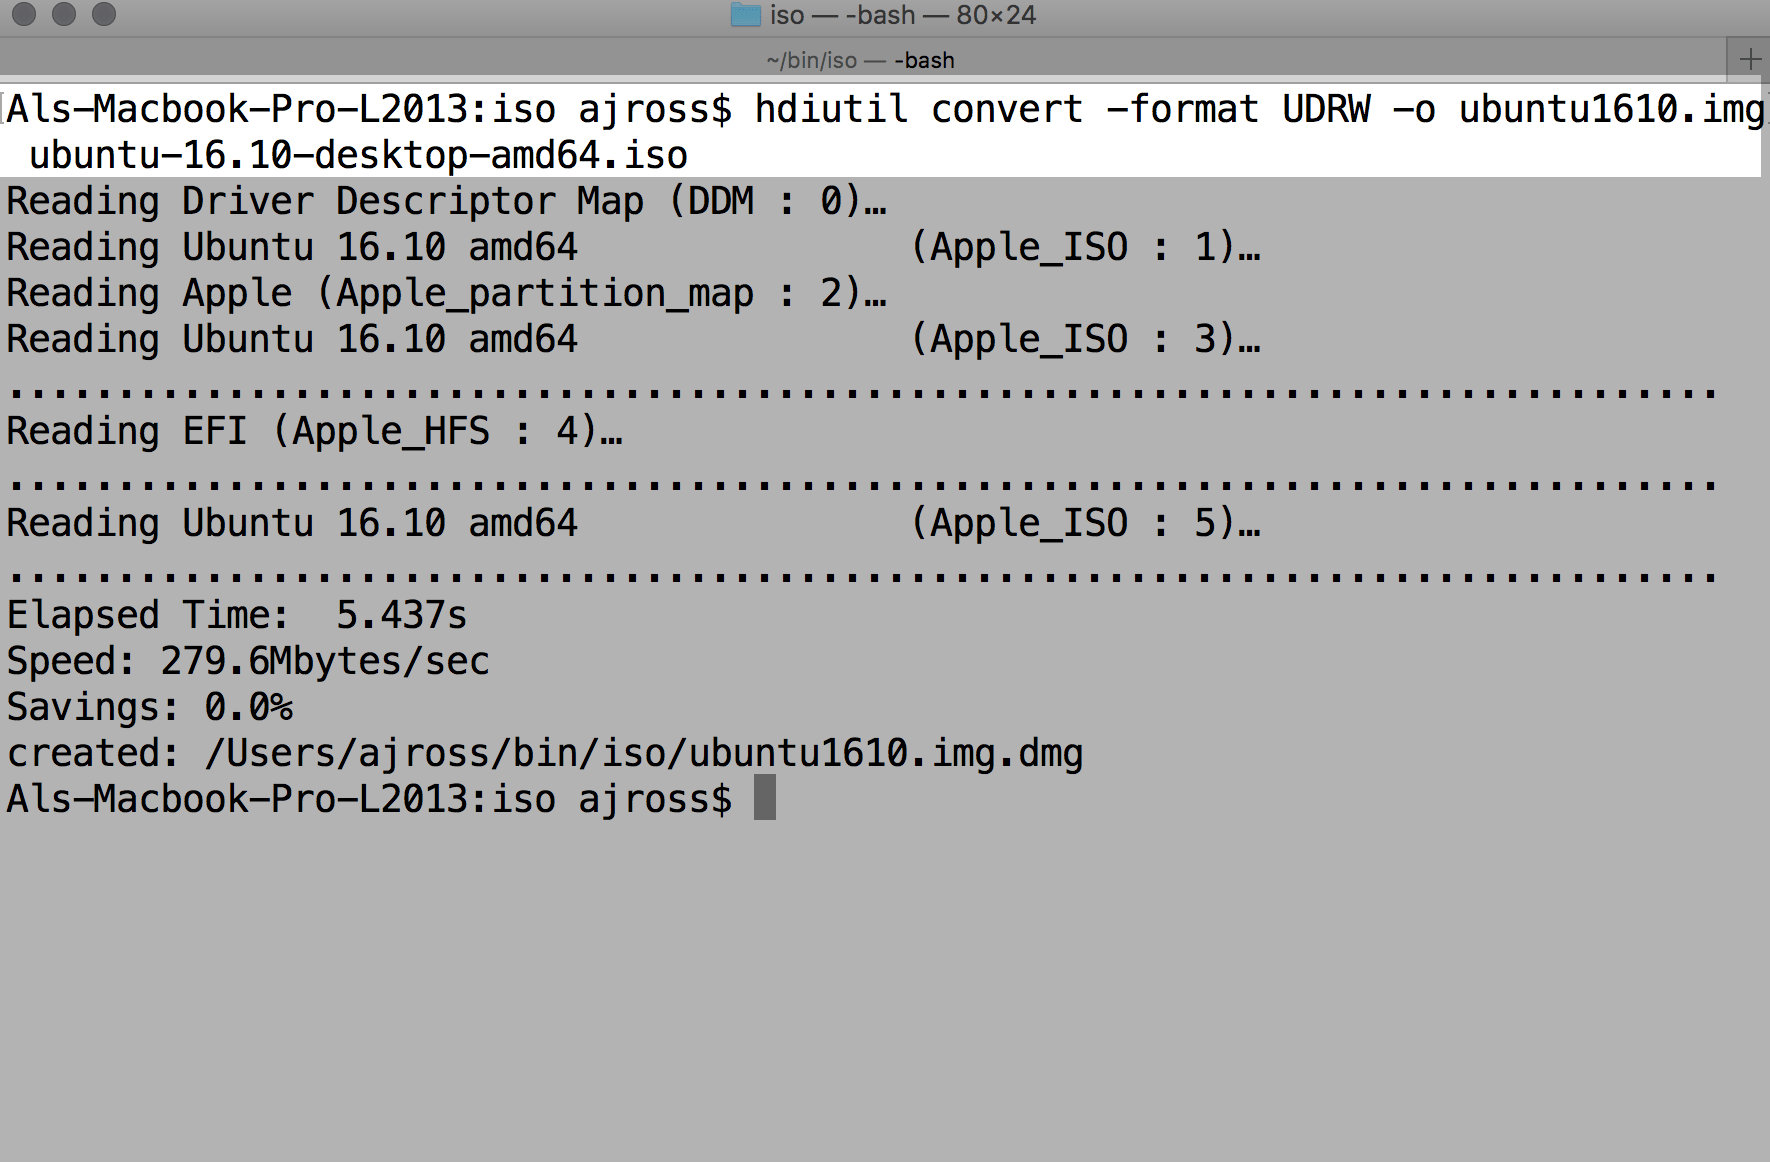 How to boot an ubuntu iso from your hard drive 4 steps - Convert Iso To Udrw For Use On The Usb Stick From The Mac